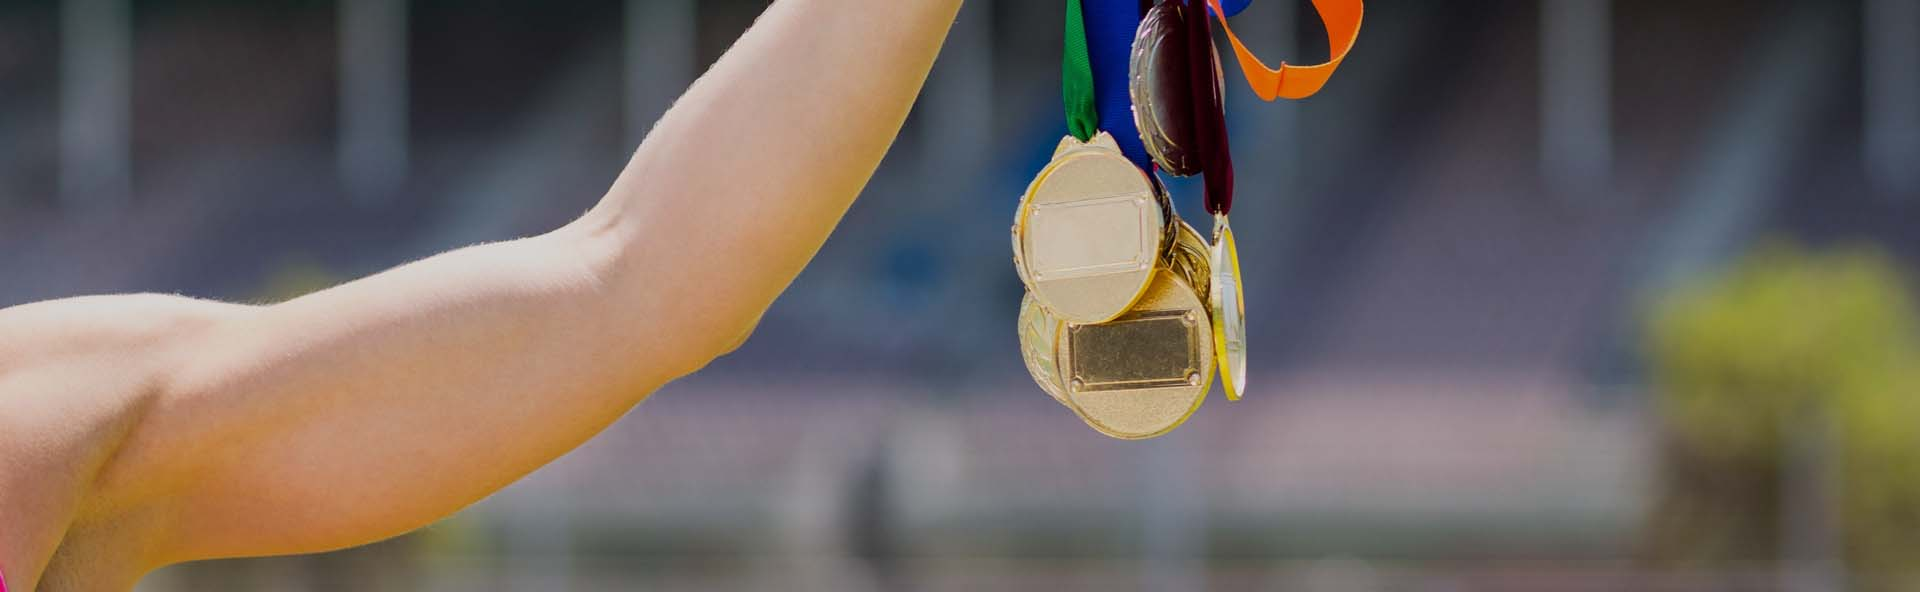 Effects Of Tainted Supplements  Olympic Relay Team Loses